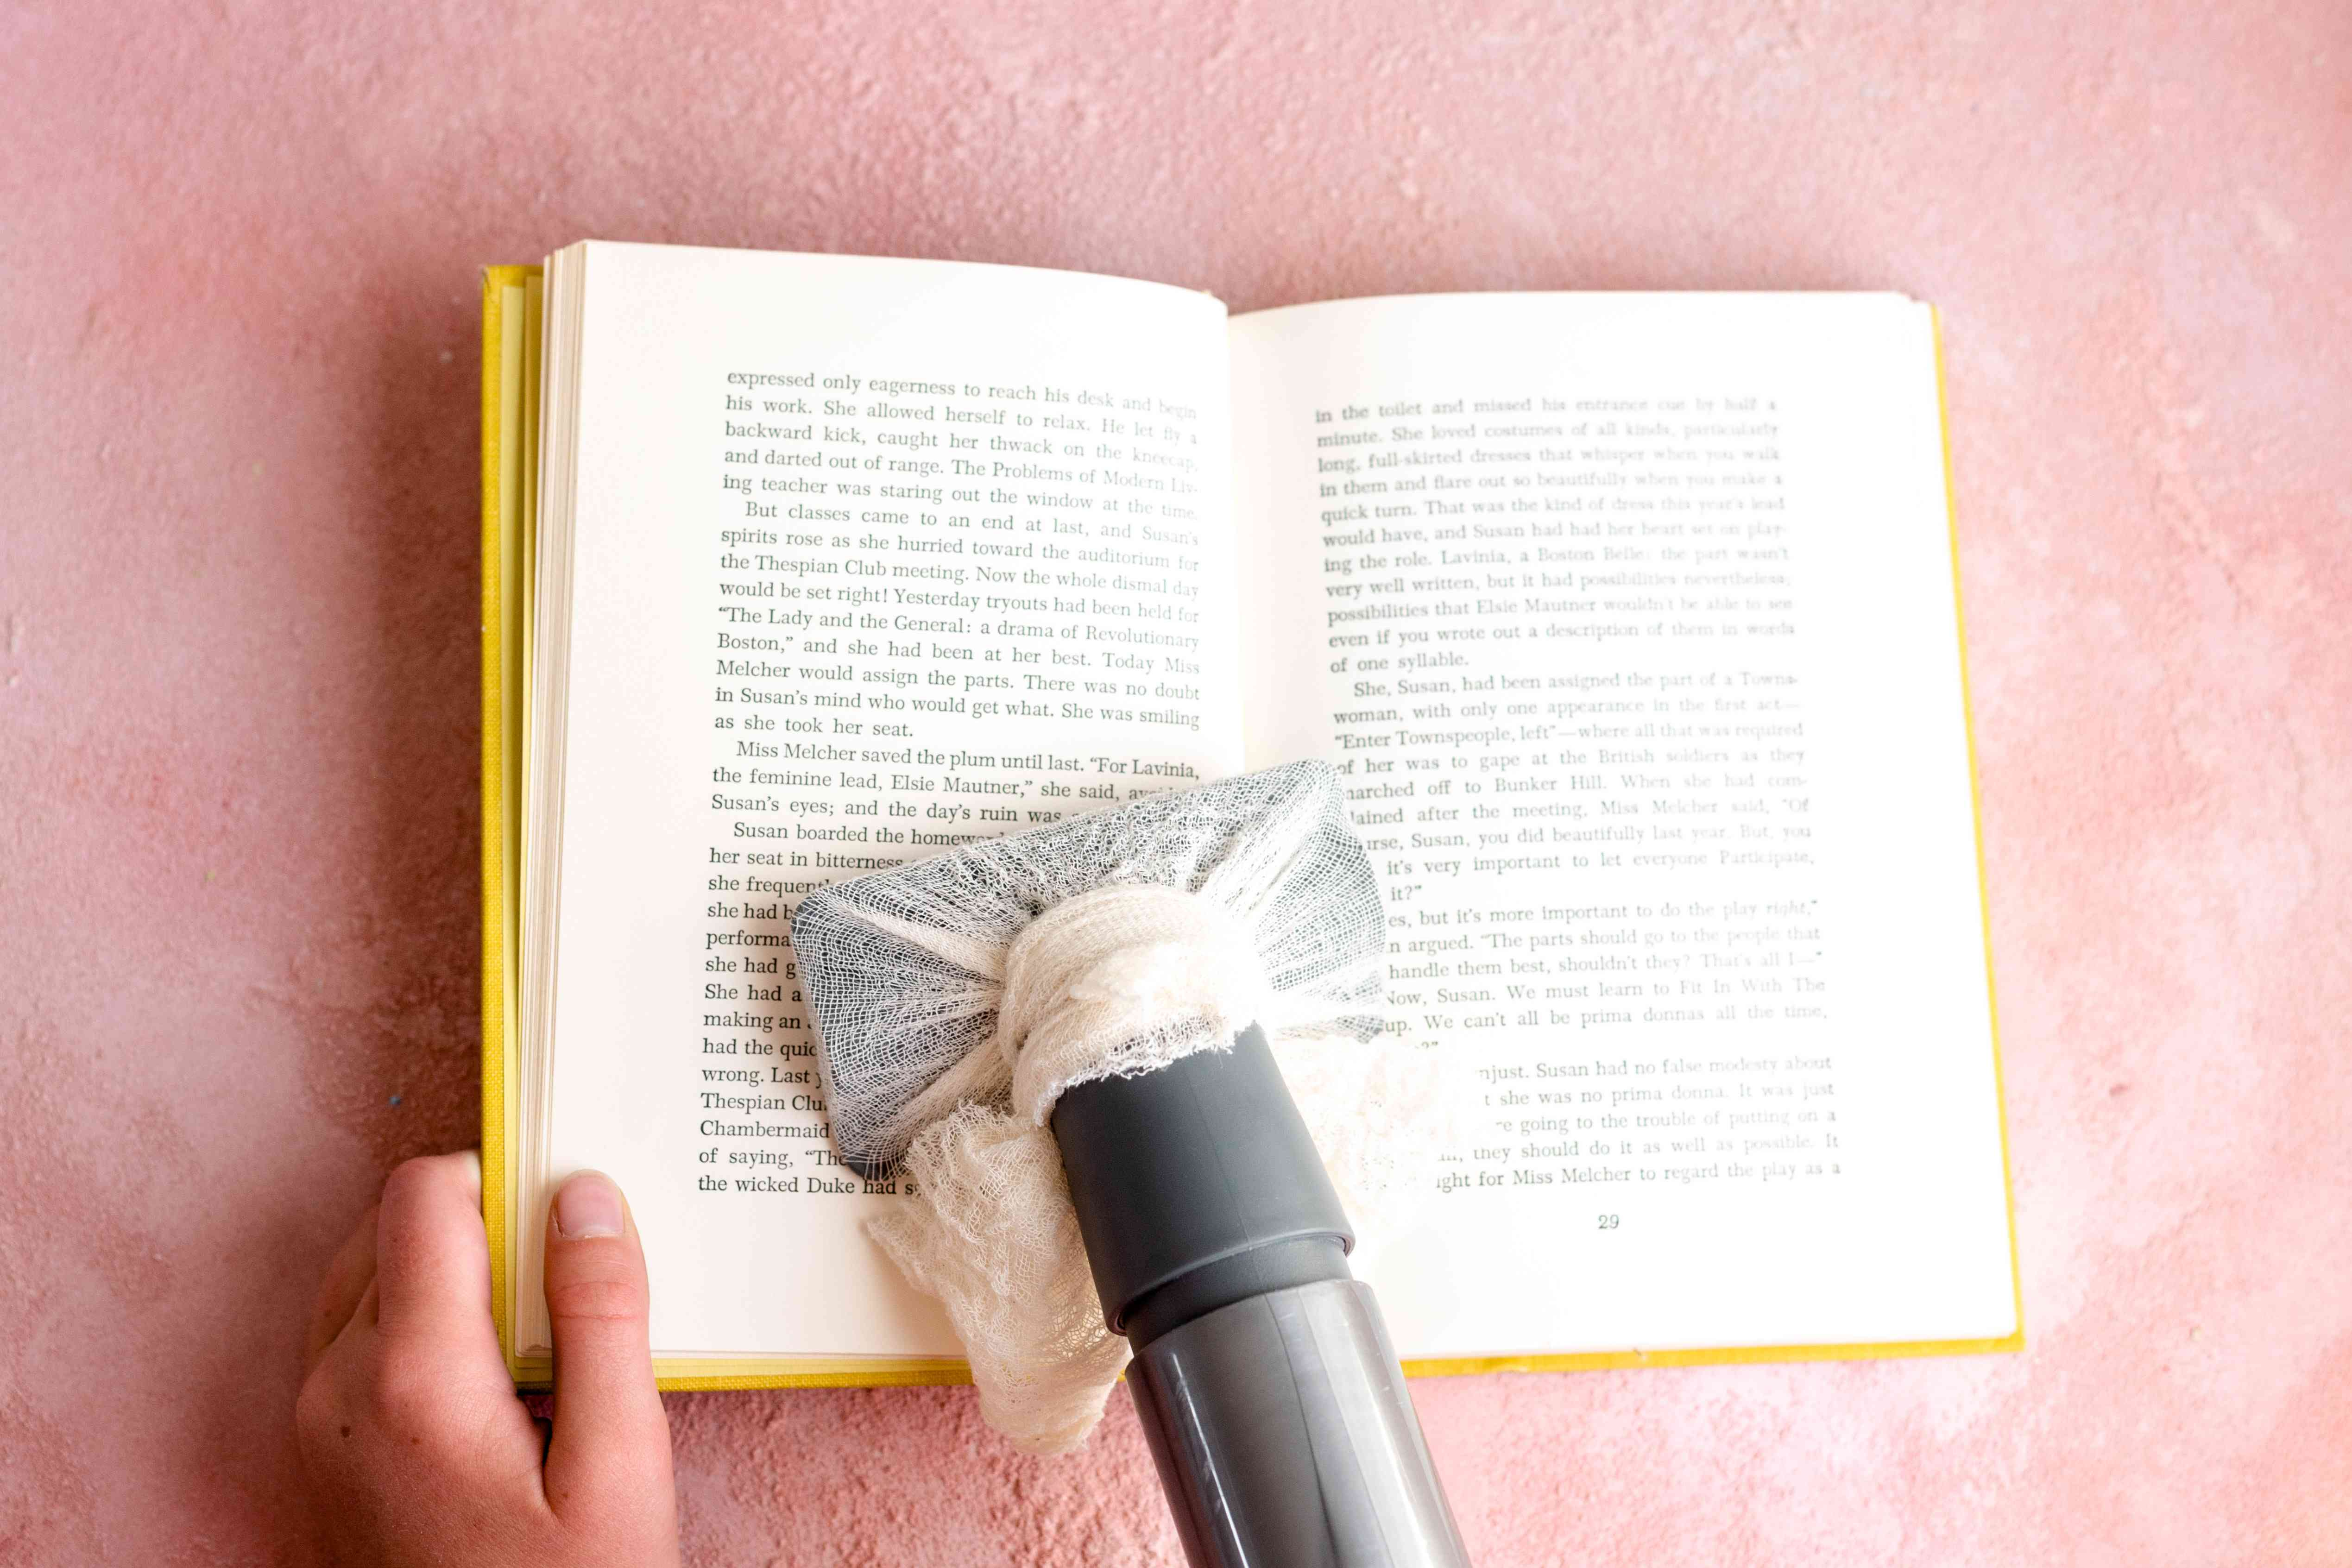 vacuuming inner pages of a book